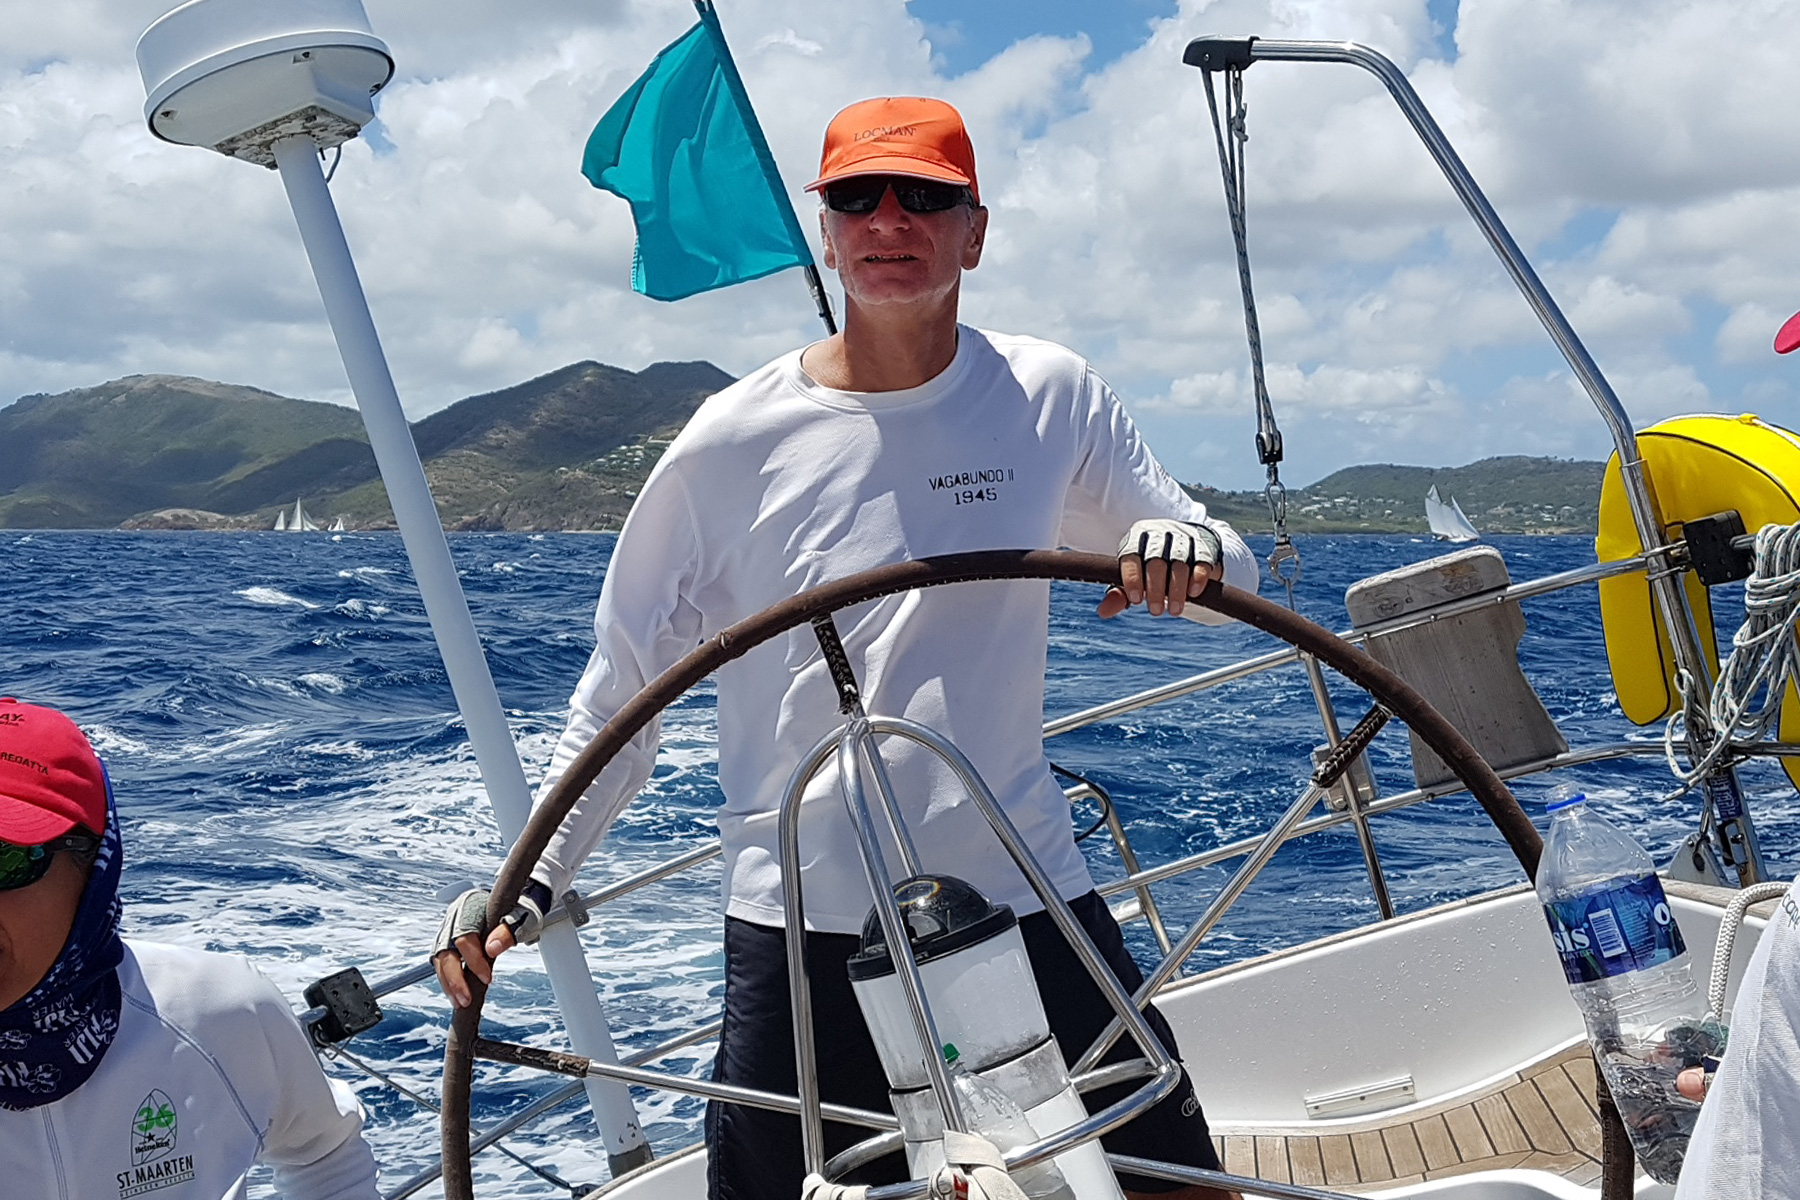 Skipper Markus Bocks at the helm of the Montana